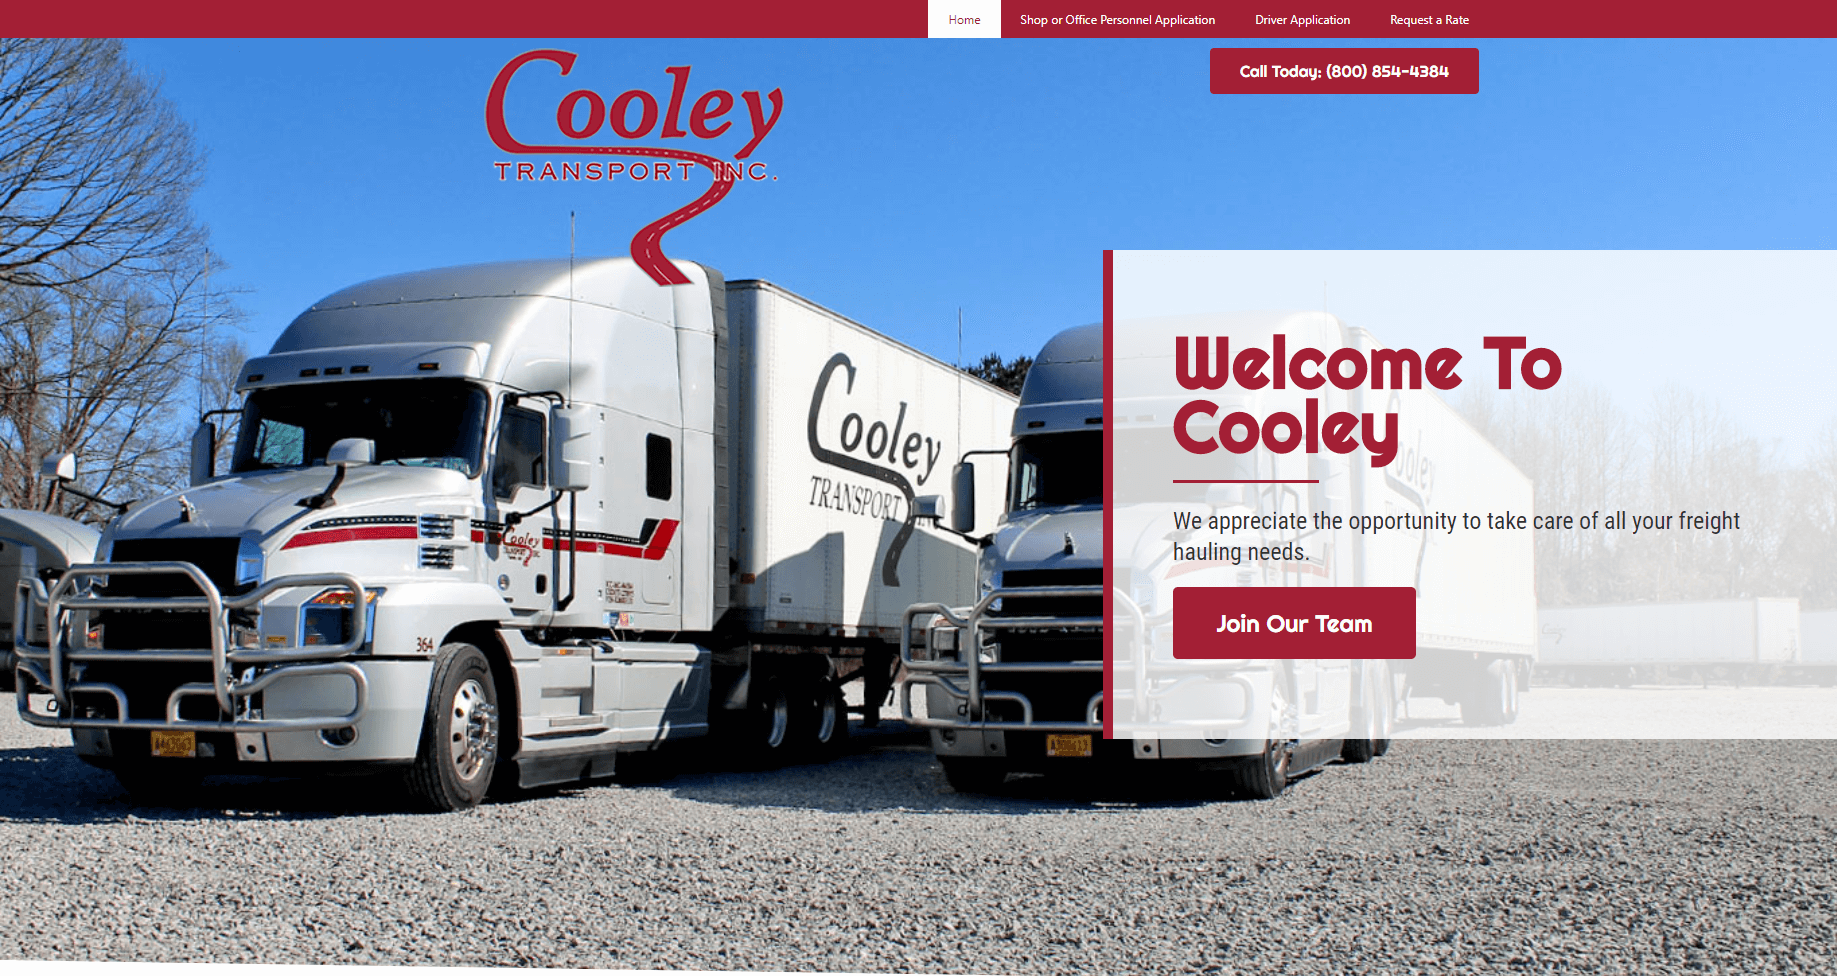 trucking company website - cooley transport, tupelo, ms